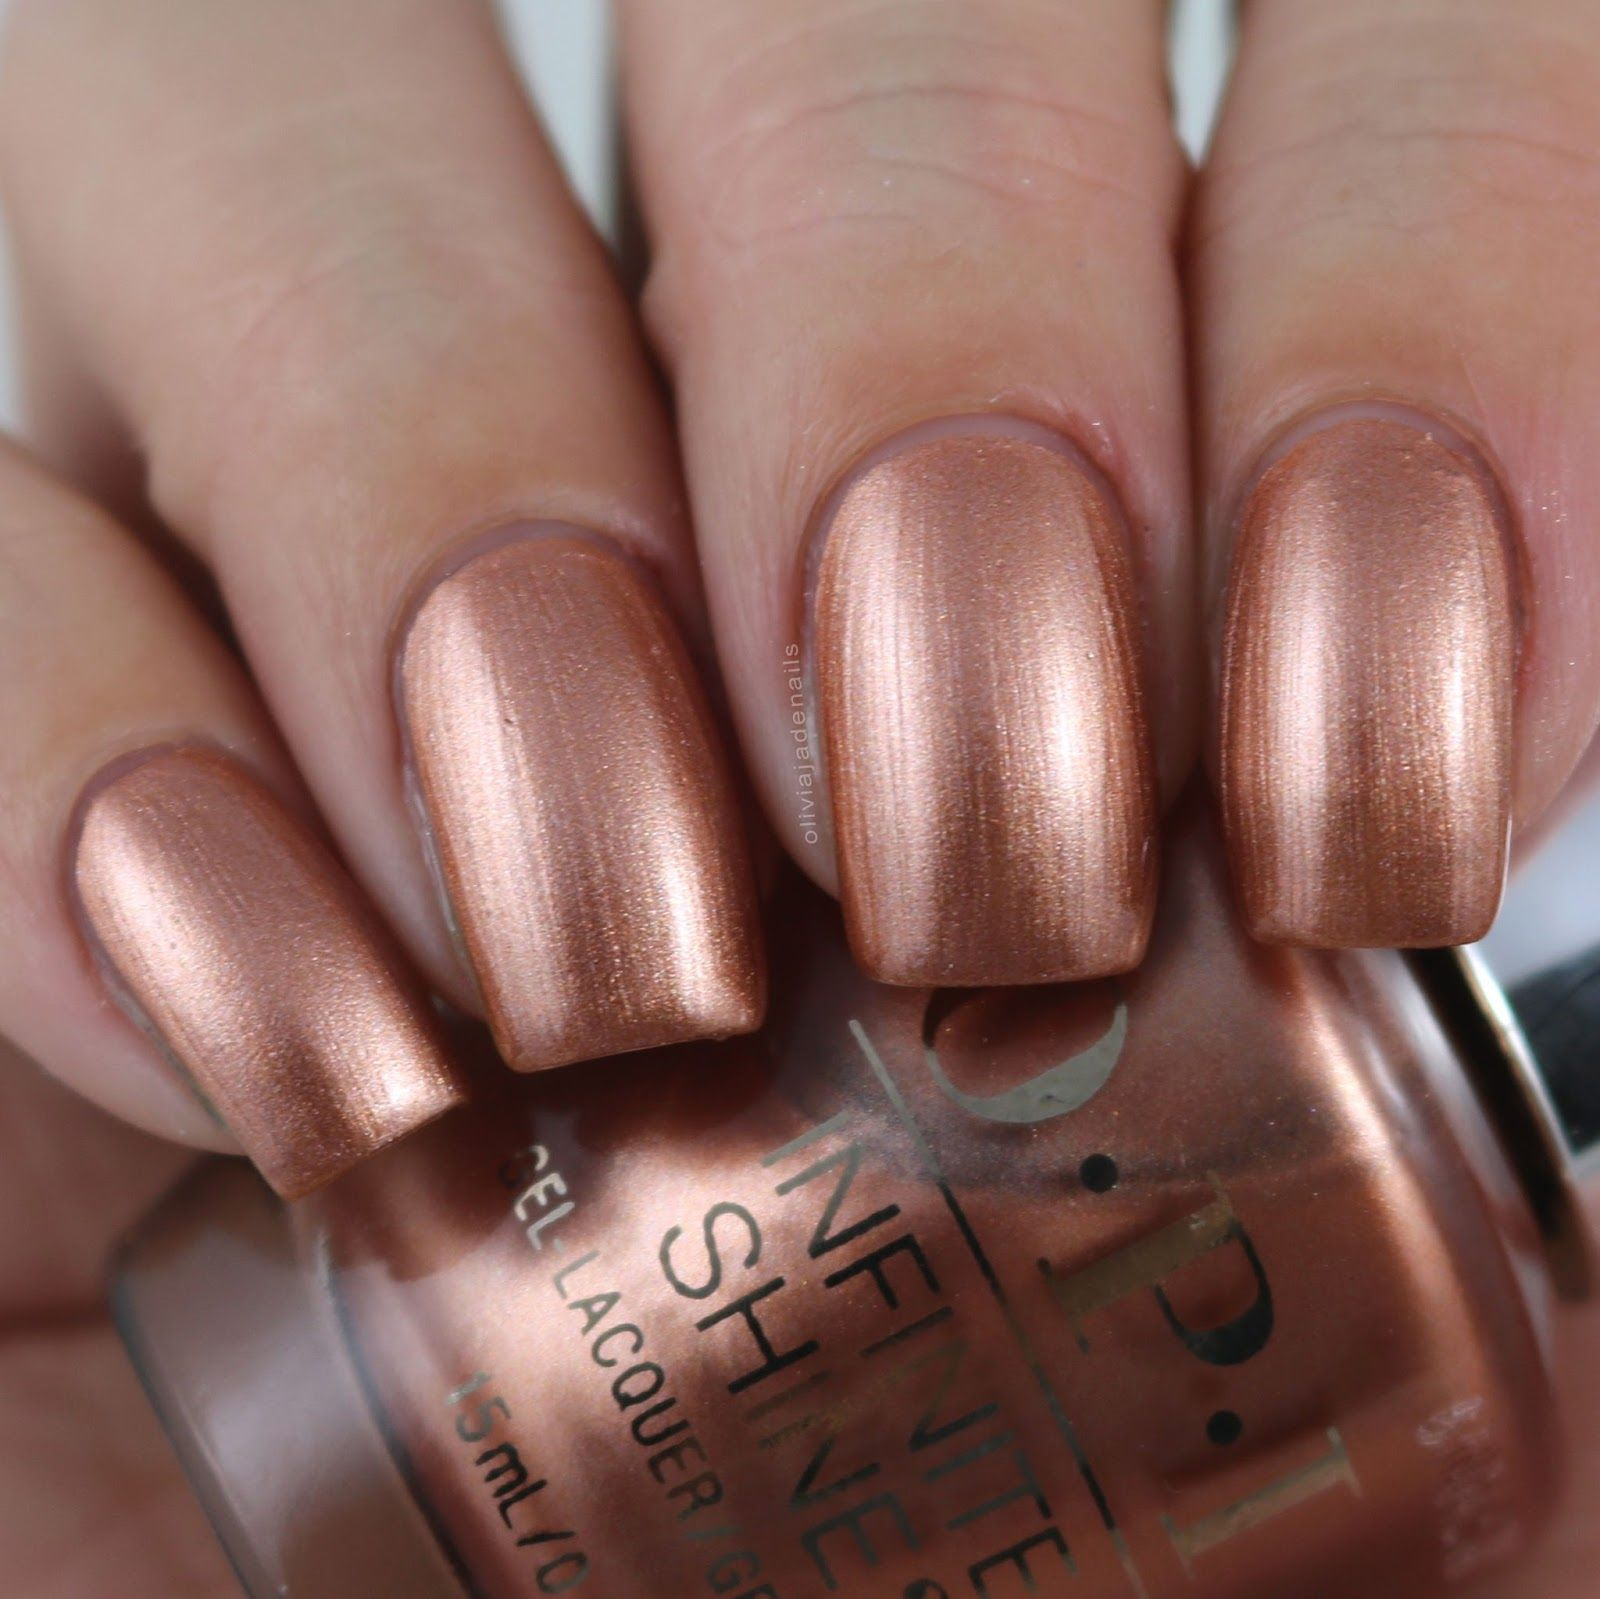 OPI Sweet Carmel sundae | Nails | Pinterest | OPI, Caramel and Jade ...